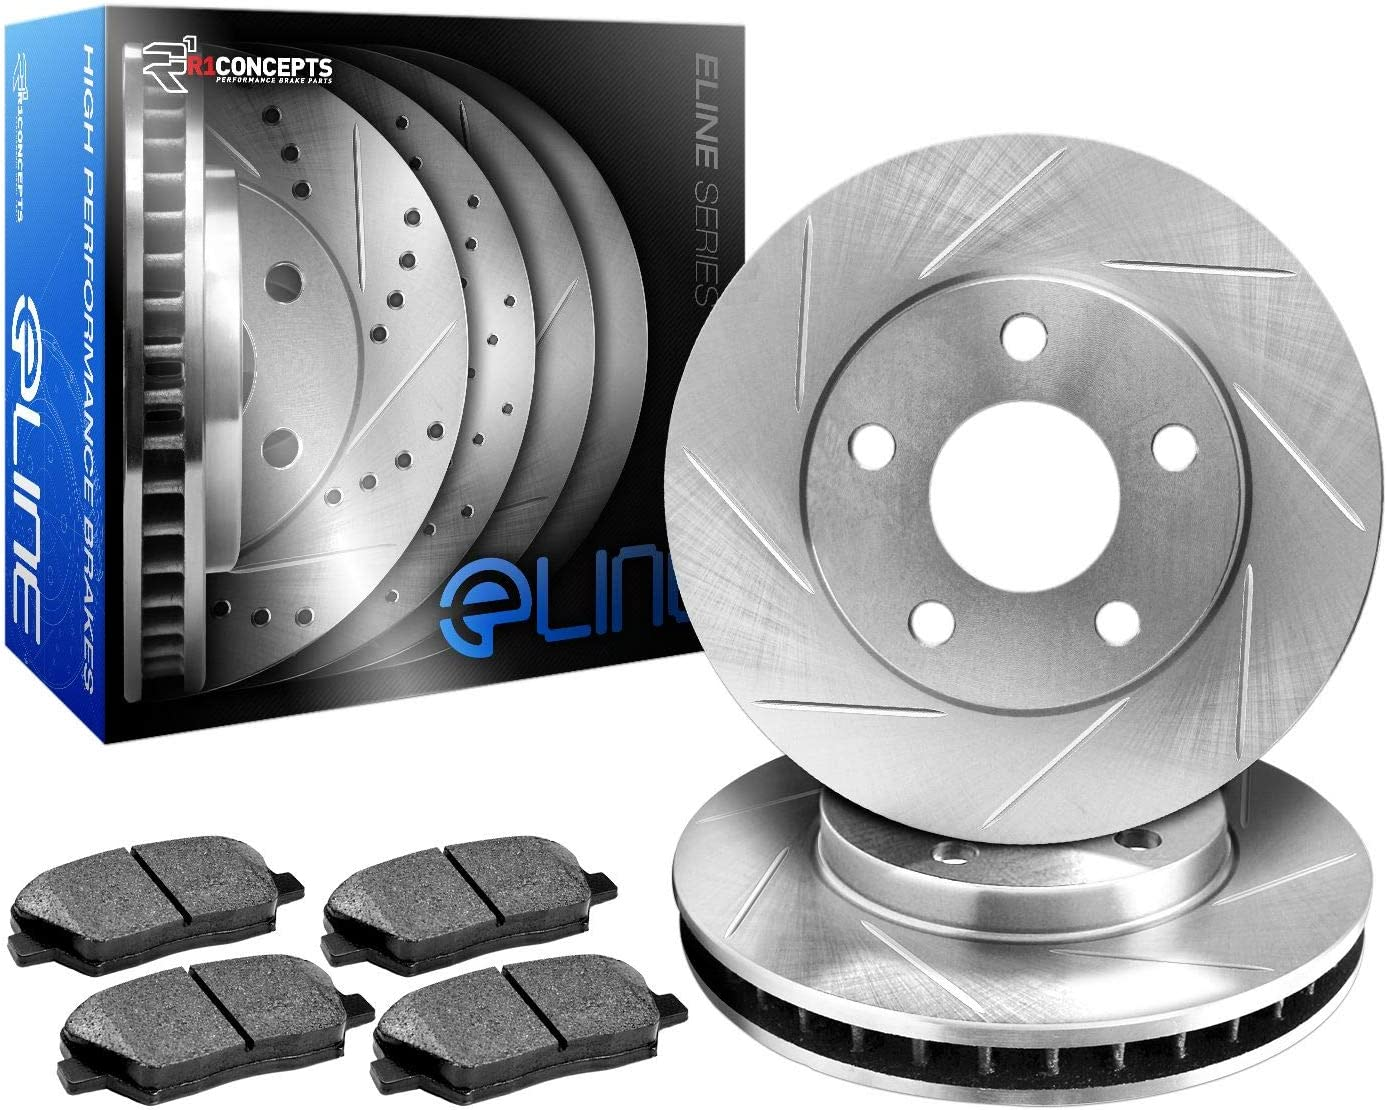 R1 Concepts KES11120 overseas Lowest price challenge Eline Series Pad Rotors Ceramic Slotted And